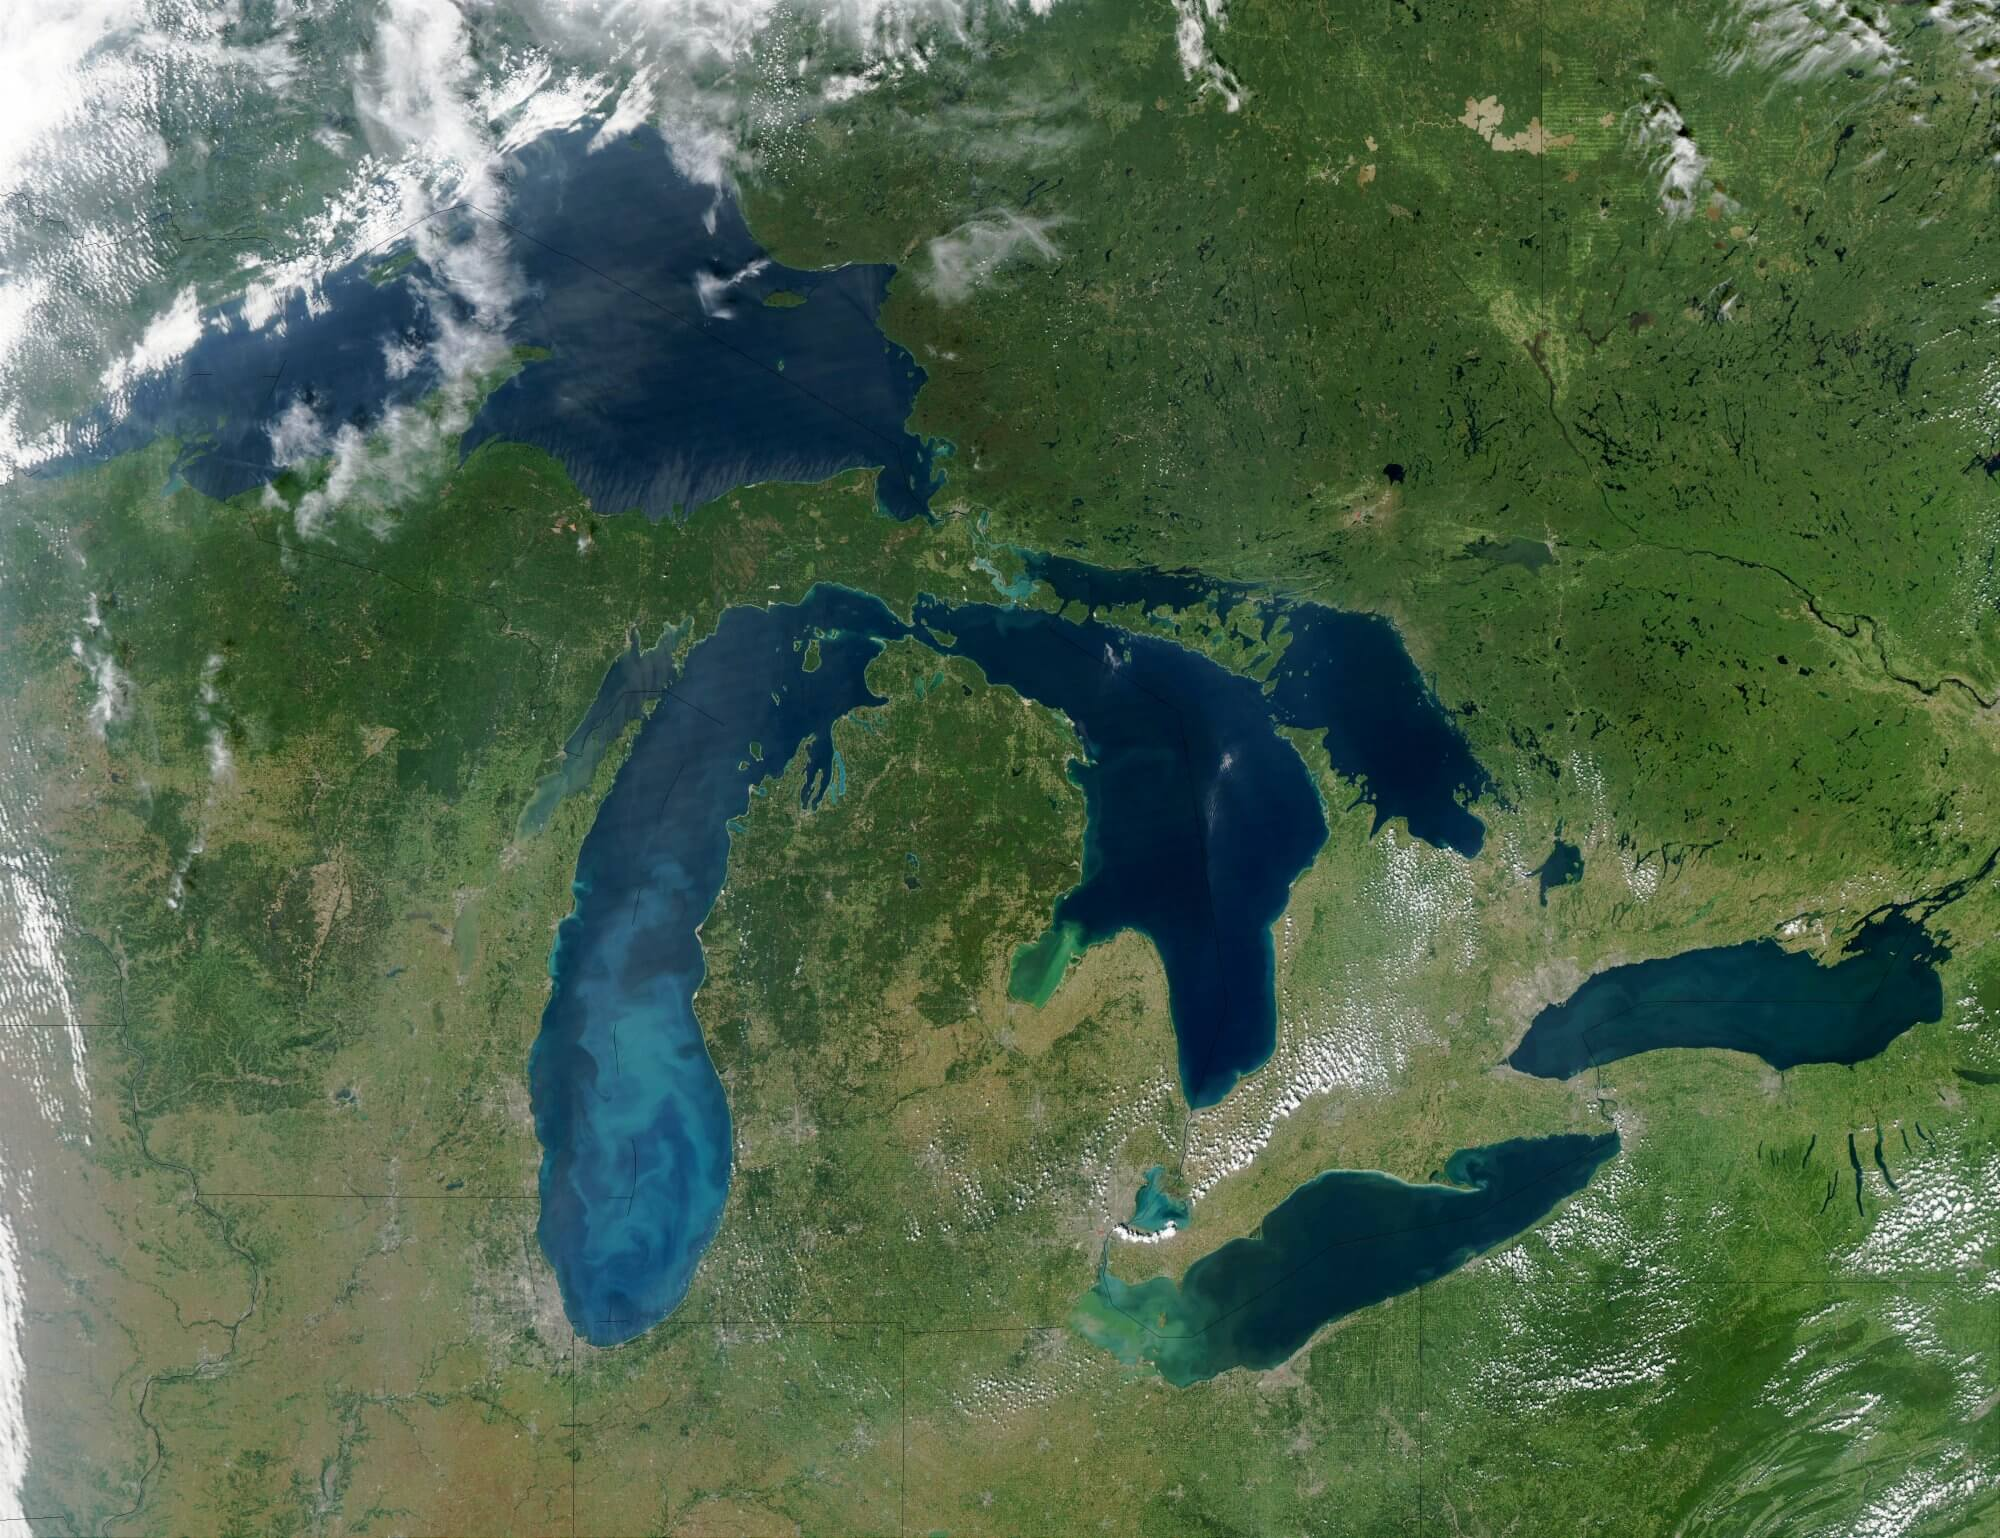 Watershed Modeling to Improve Ecosystem Services in the Great Lakes